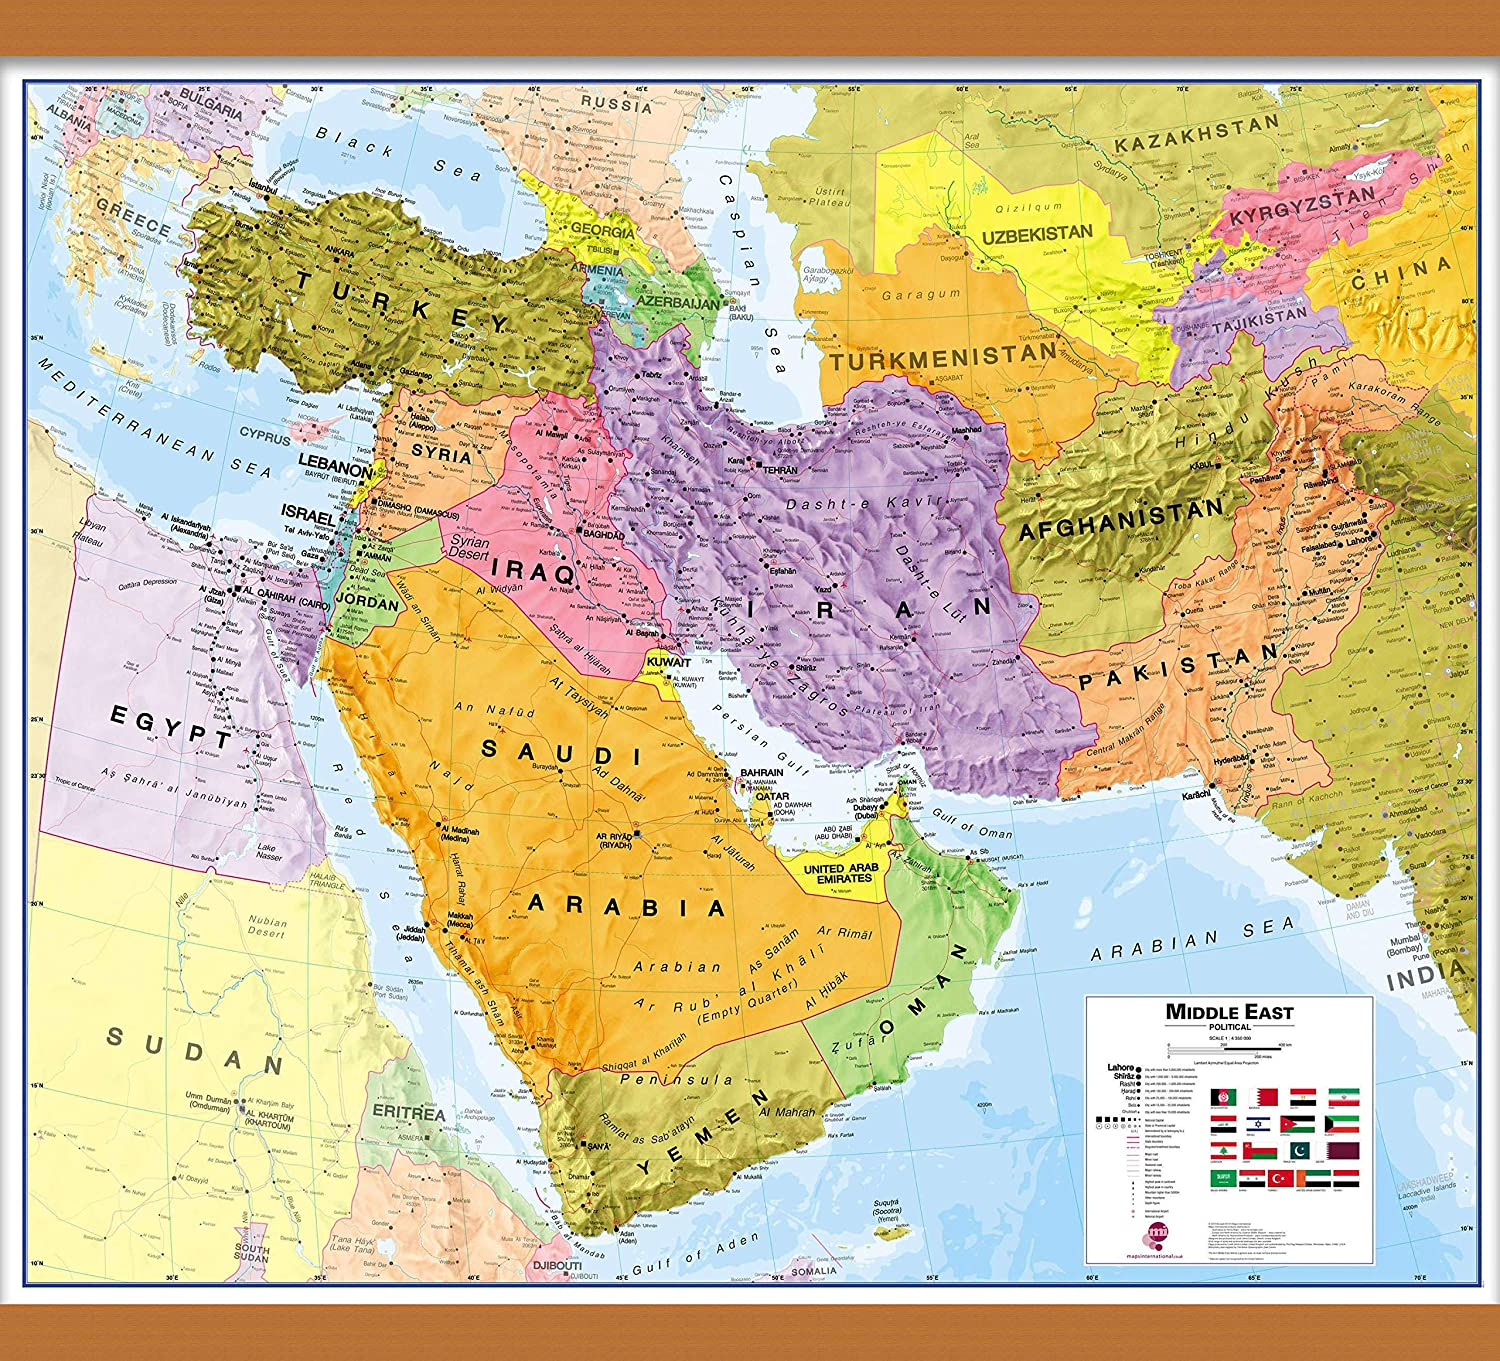 Maps International Medium Political Middle East Wall Map - Paper - 33 x 27  1/2 33,